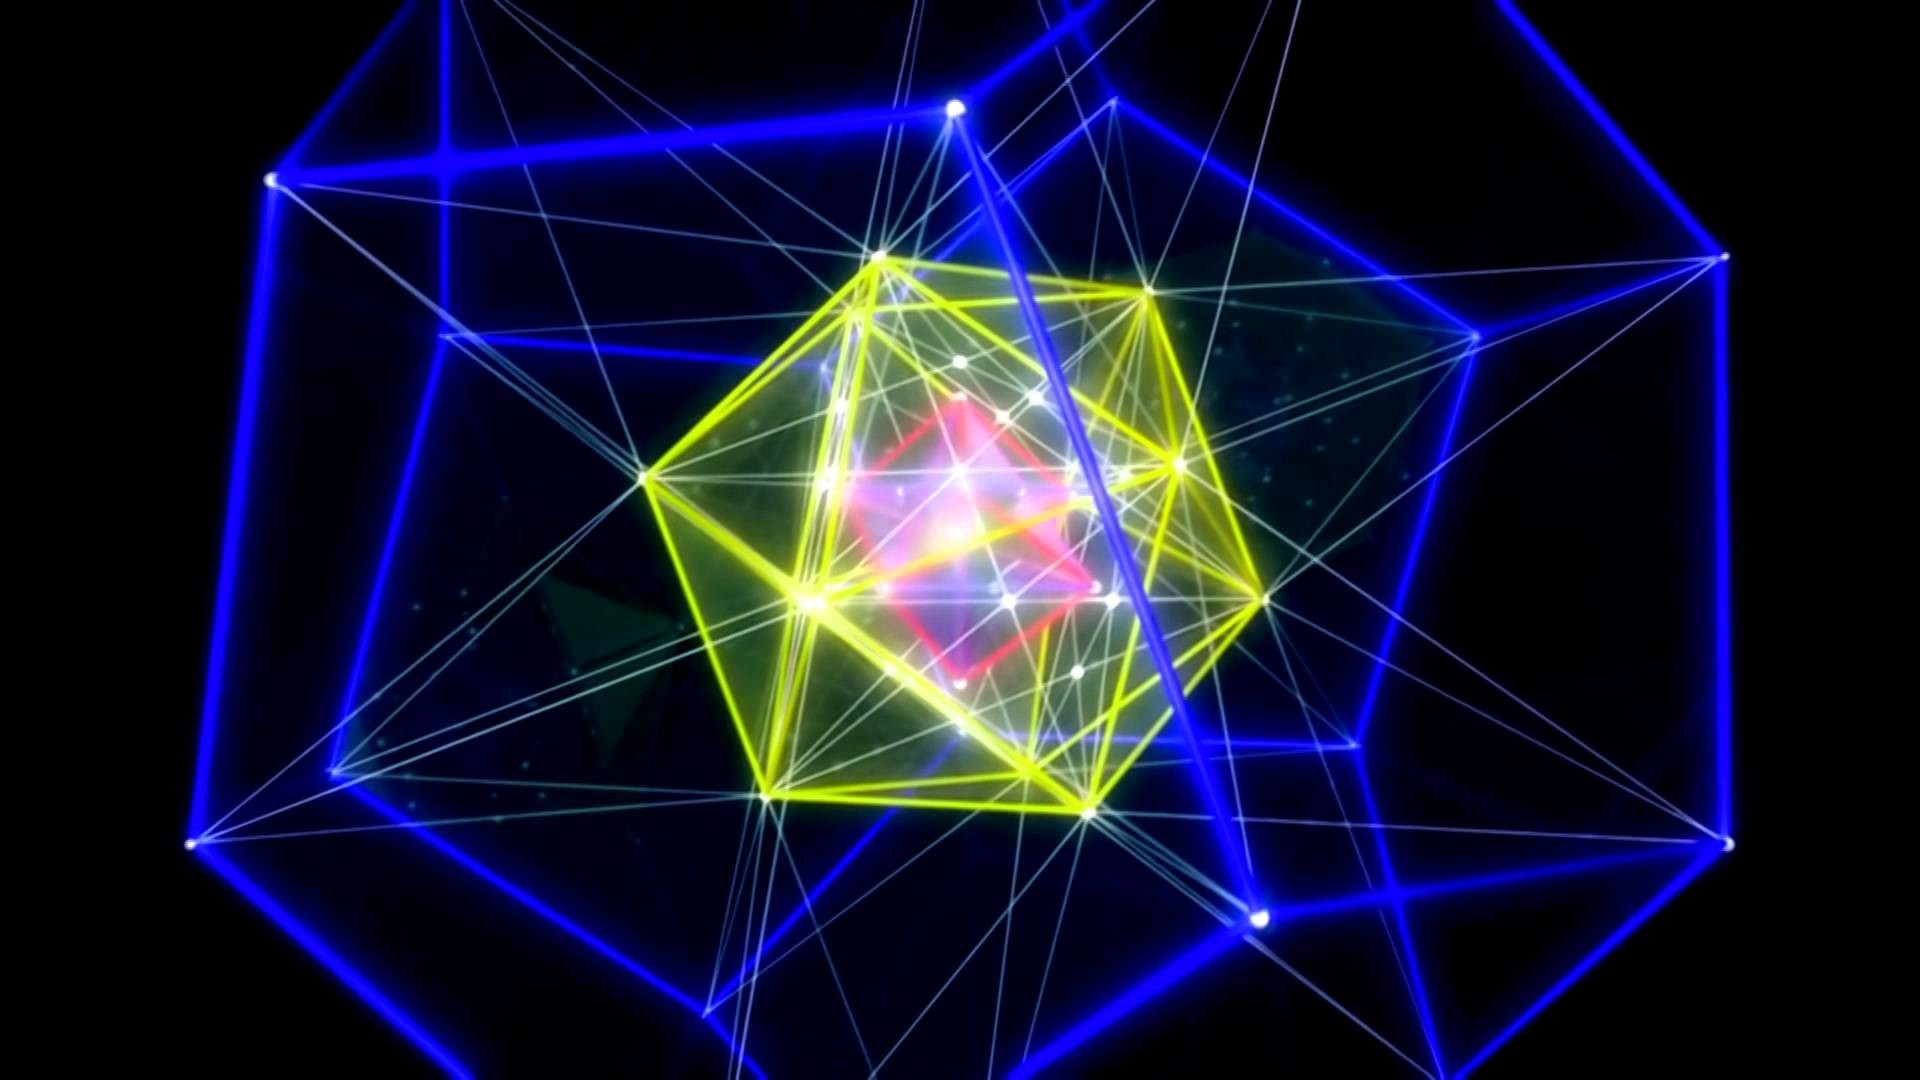 1920x1080 Morphing Platonic Solids Sacred Geometry by ieoie - remastered HD